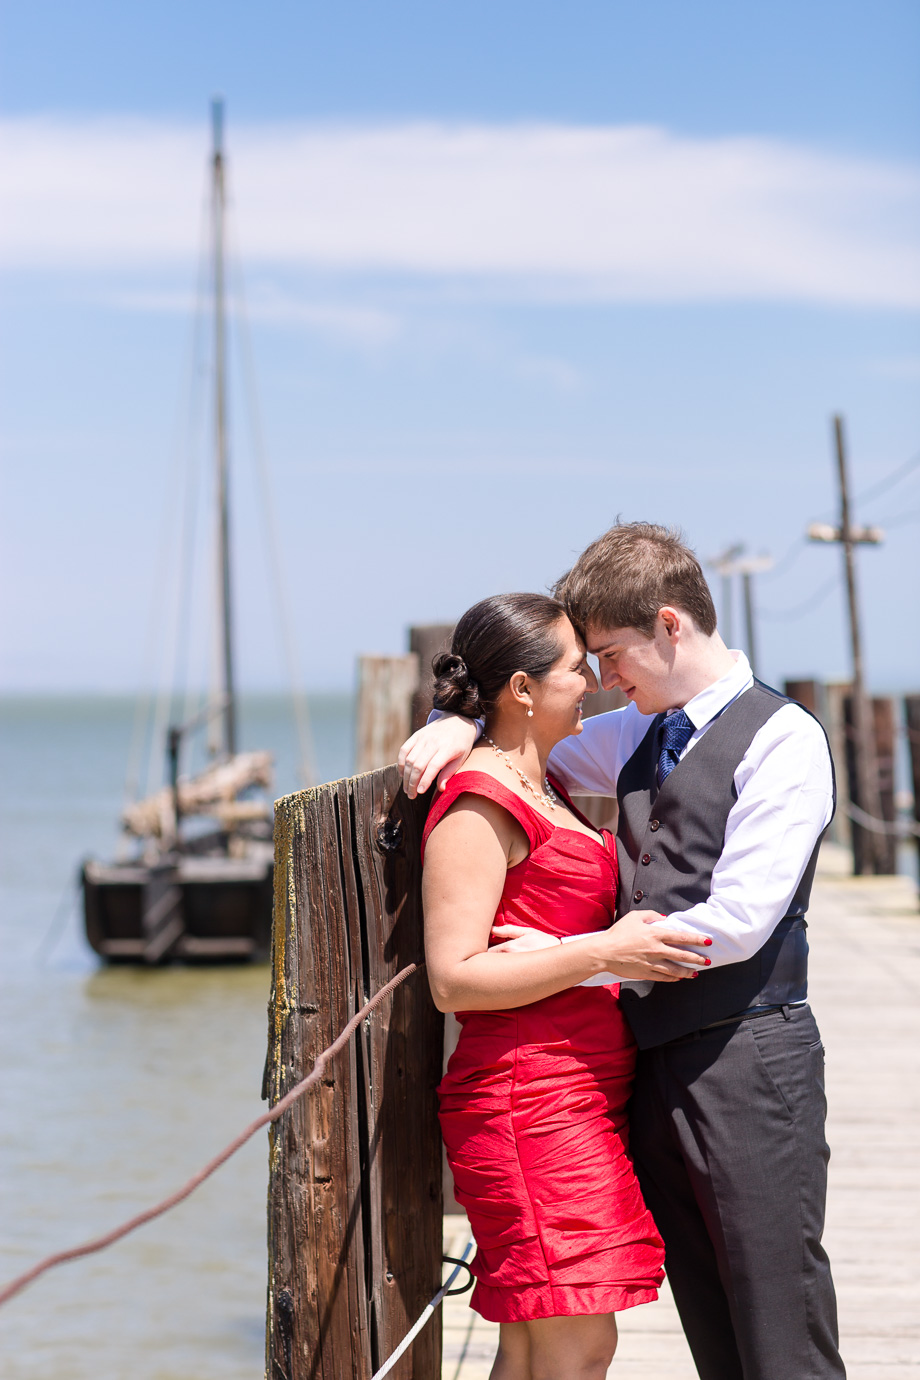 a sunny beach wedding at China Camp State Park in San Rafael